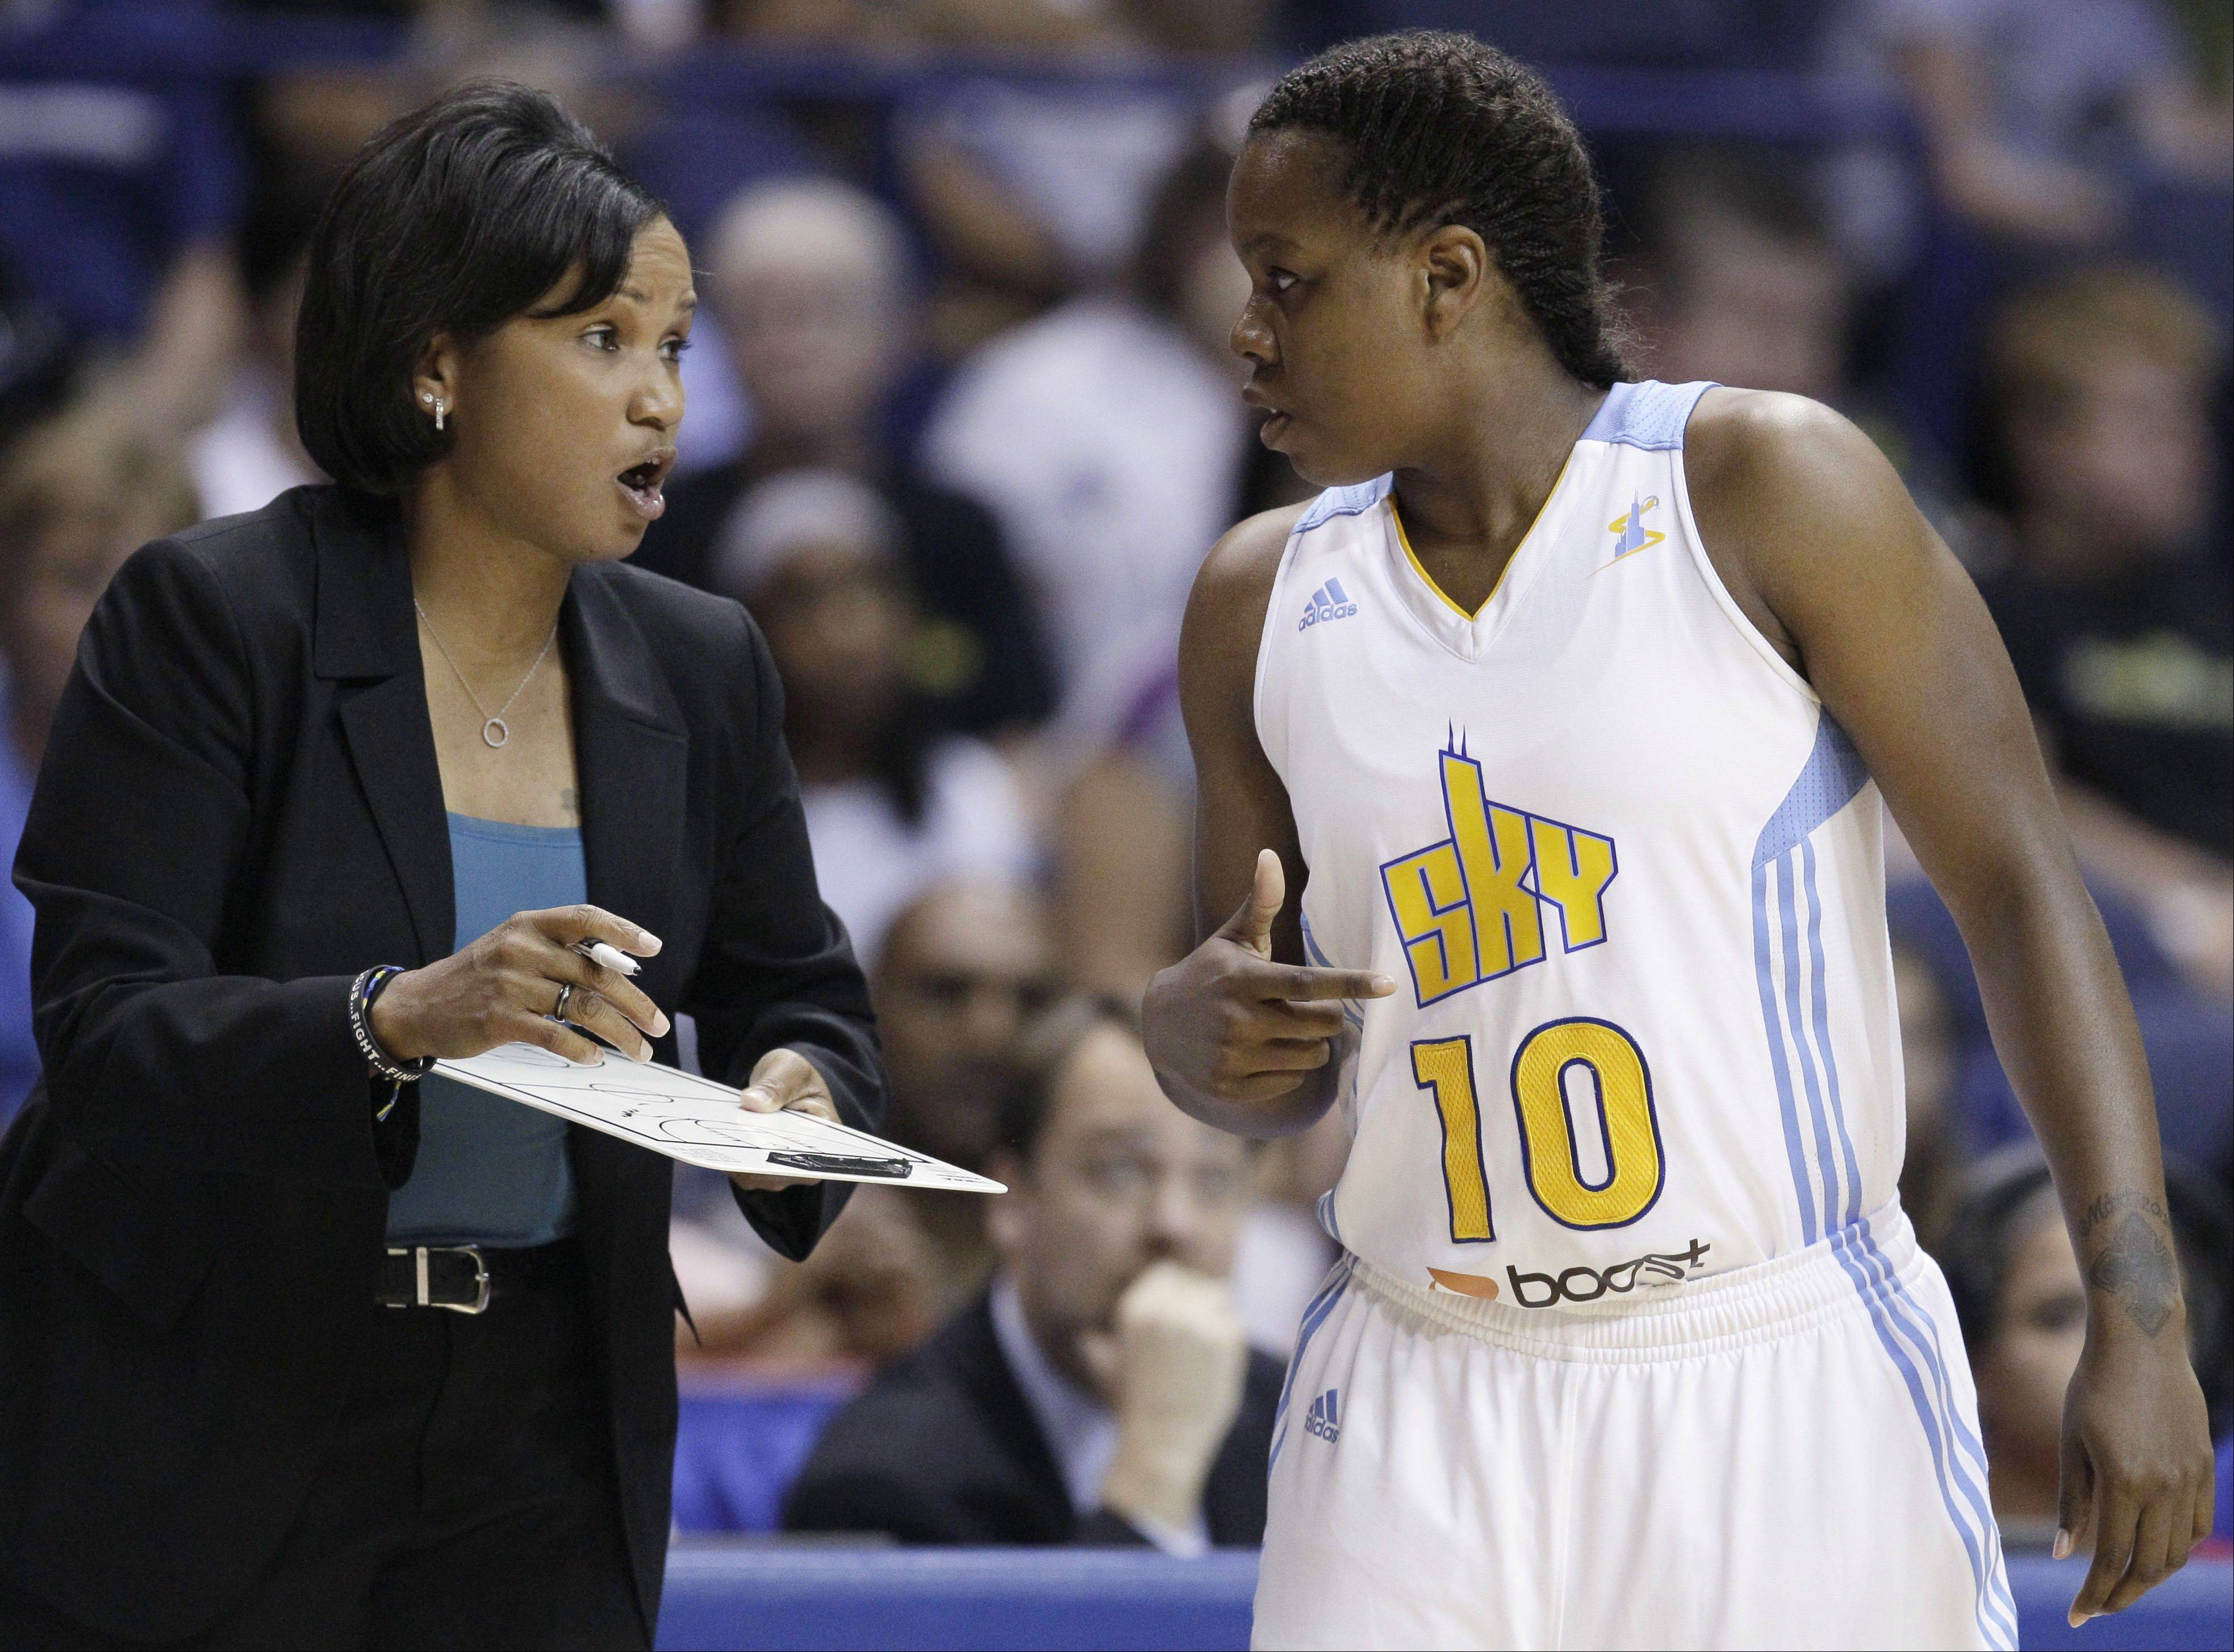 Chicago Sky head coach Pokey Chatman has been pushing guard Epiphanny Prince to take charge on the floor. This season, Prince has responded and leads the WNBA in scoring.